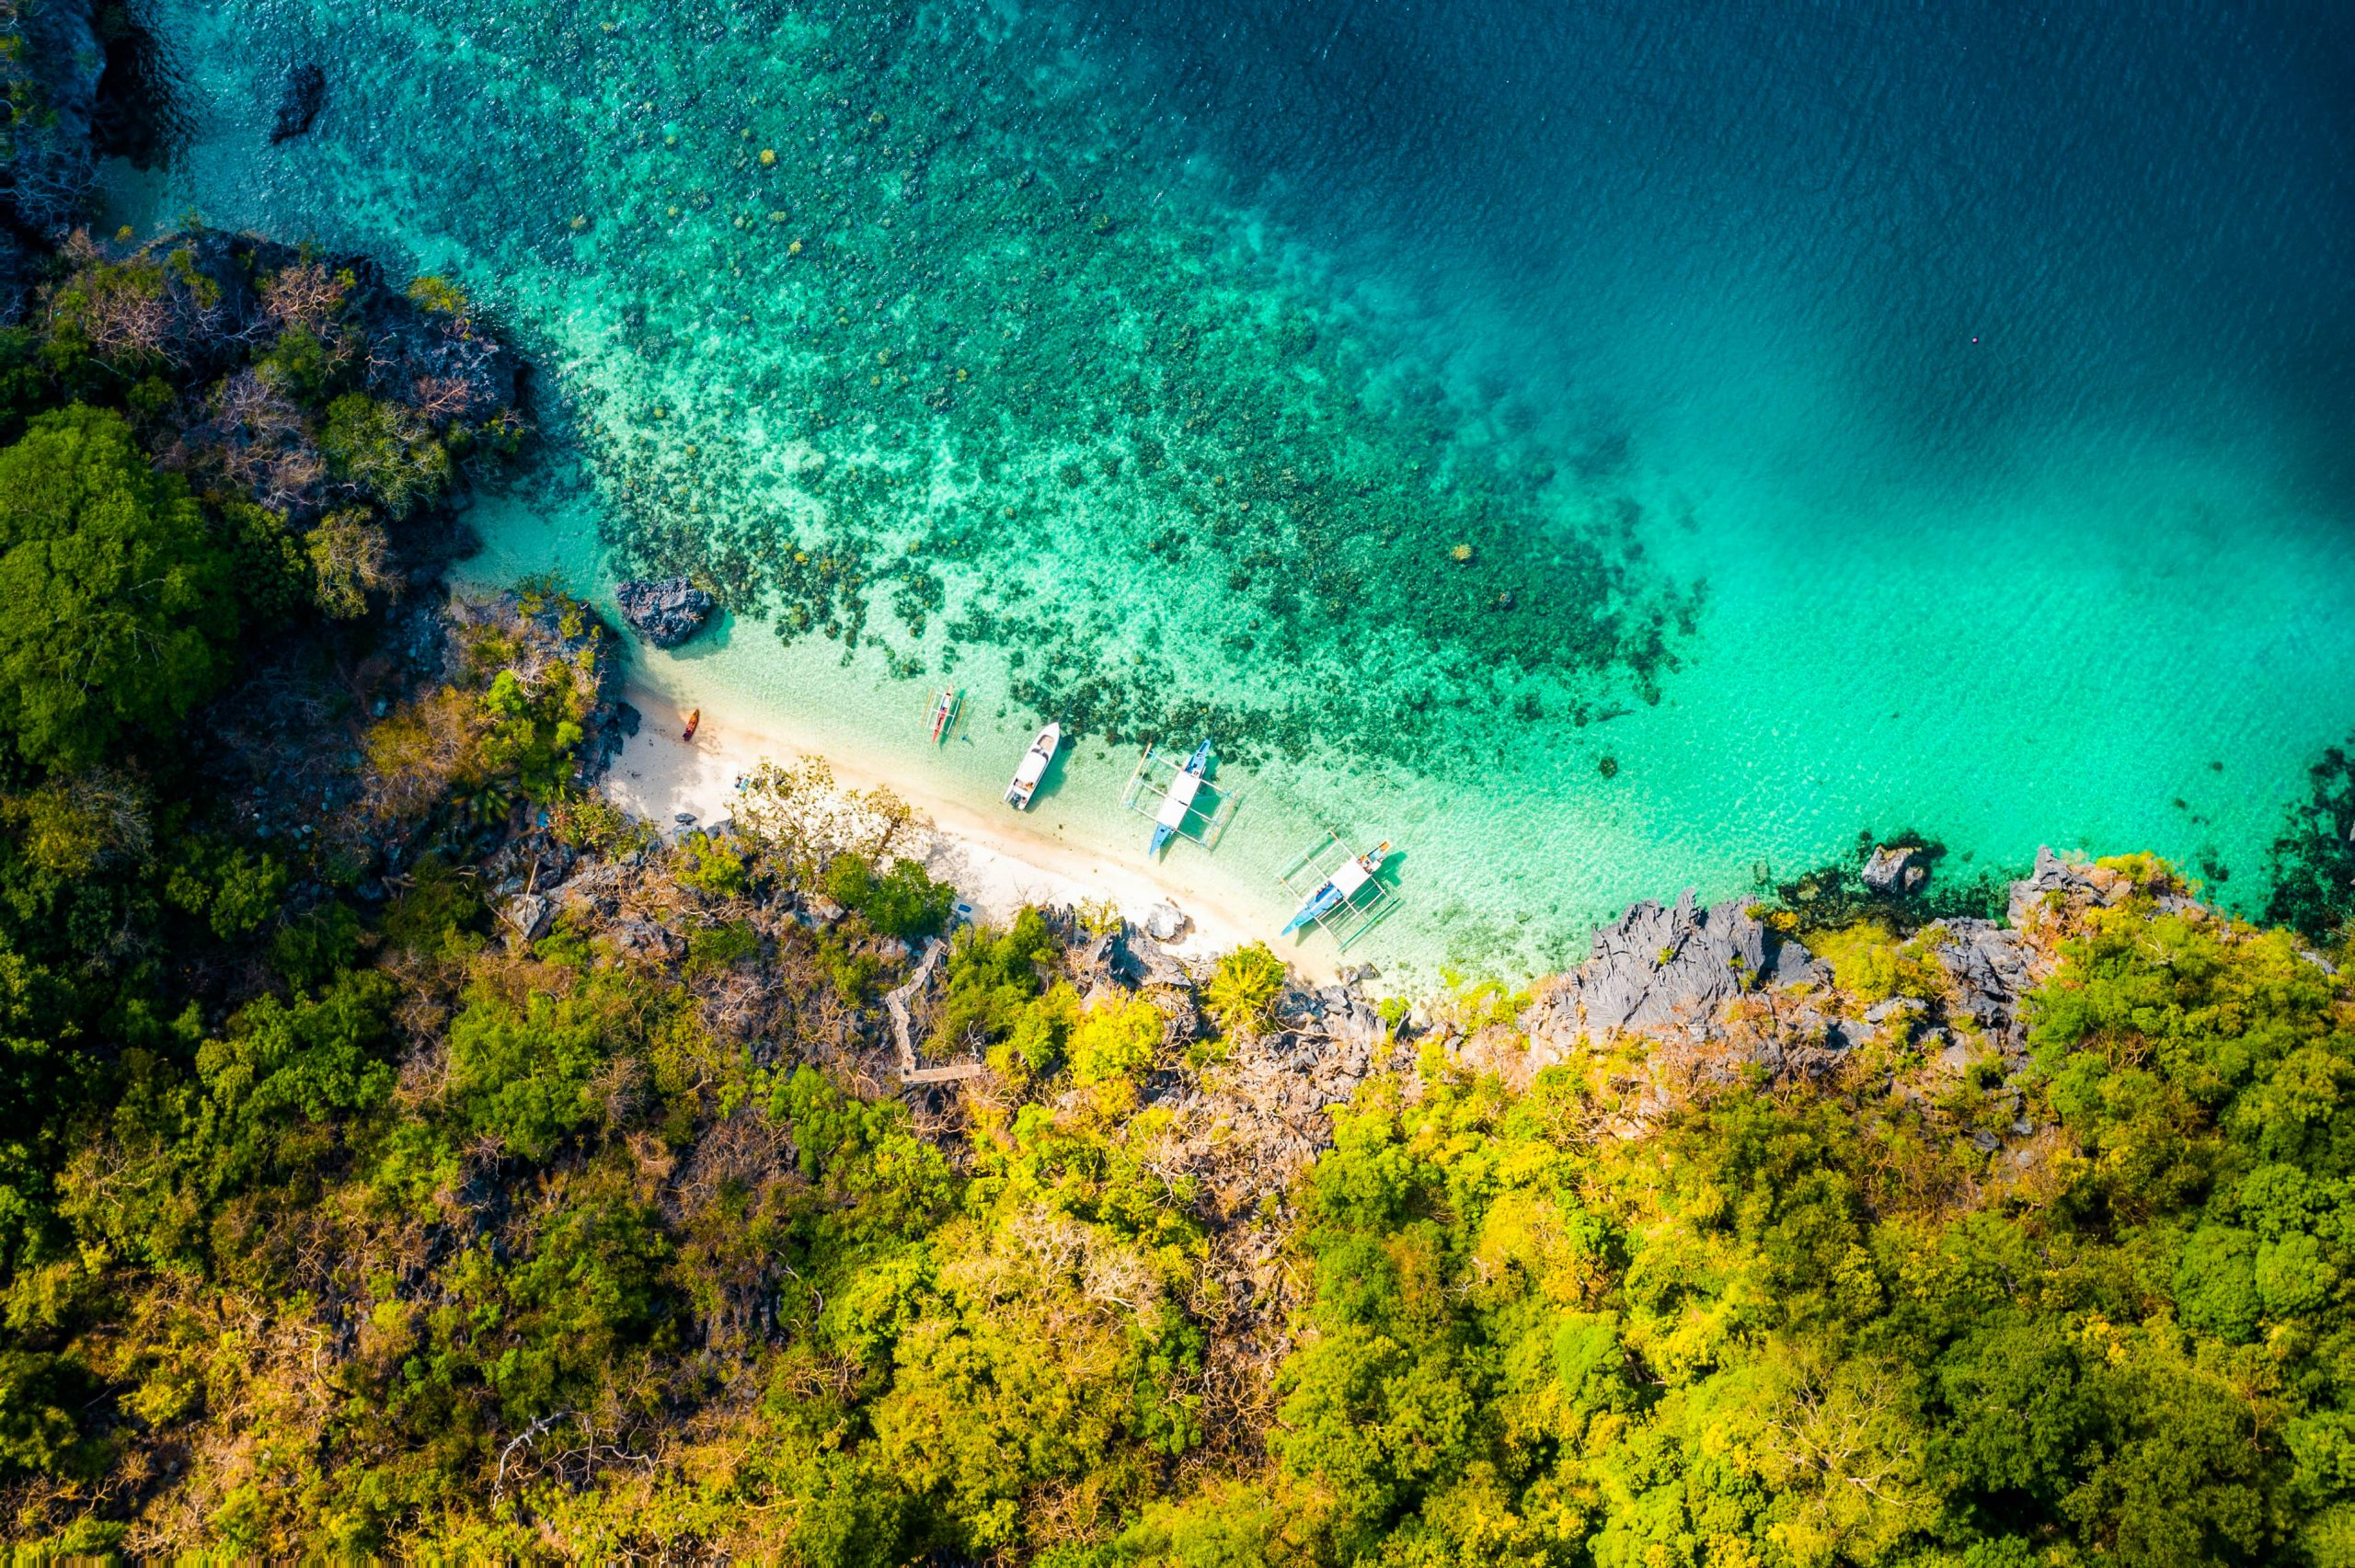 An aerial view of boats docked on a white sand beach bounded between green, rocky cliffs and turquoise waters of El Nido, one of the best places to visit in the Philippines